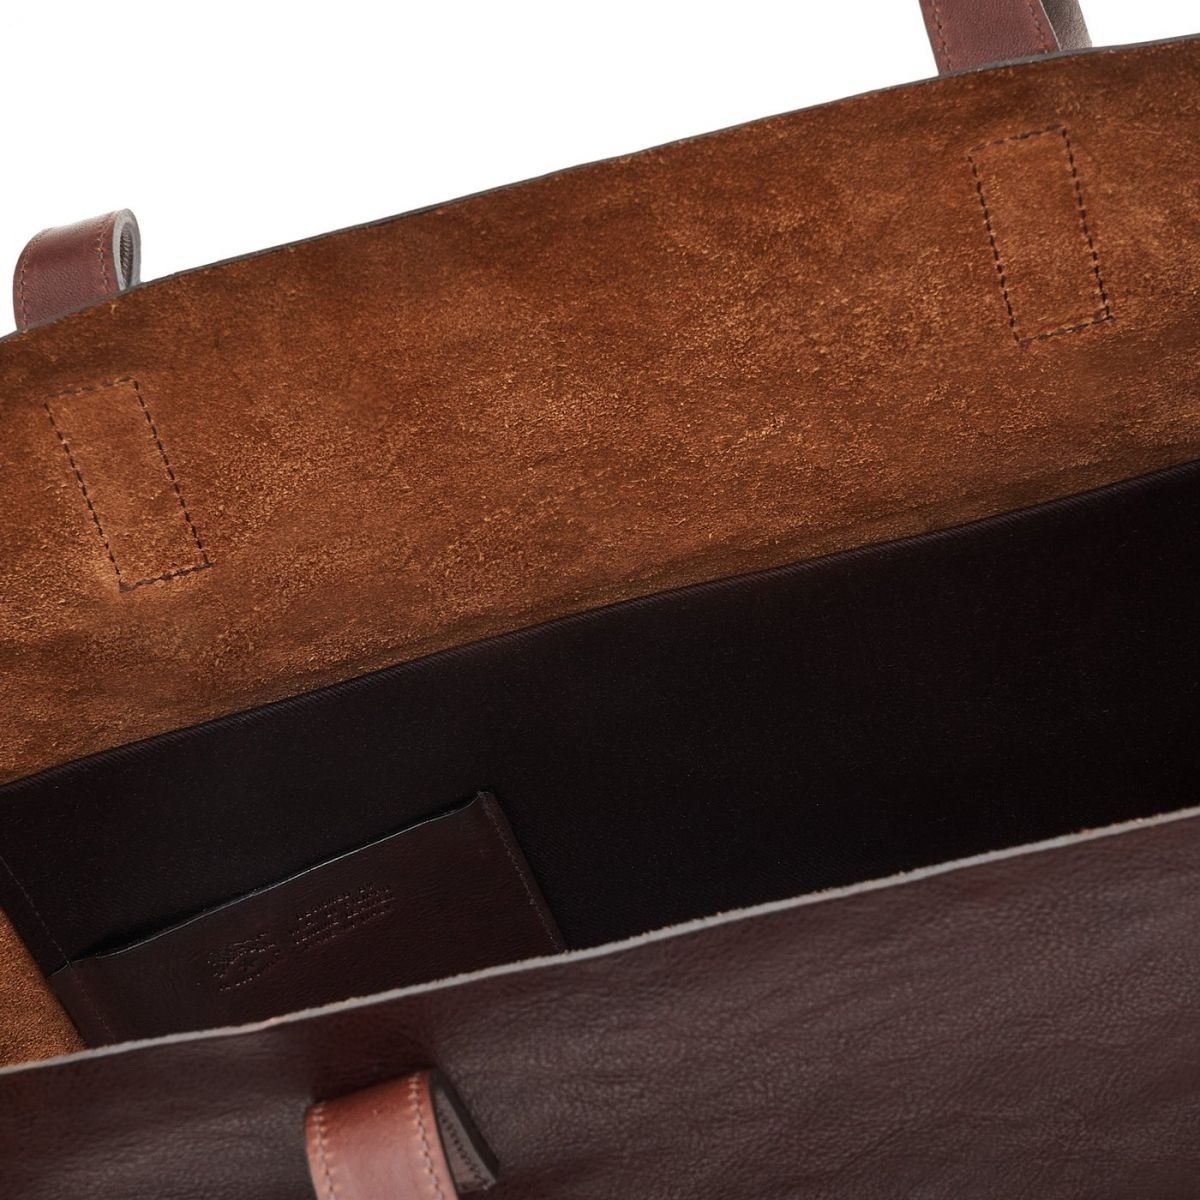 Women's Tote Bag in Vintage Cowhide Leather color Dark Brown - New Icon line BTO010 | Details